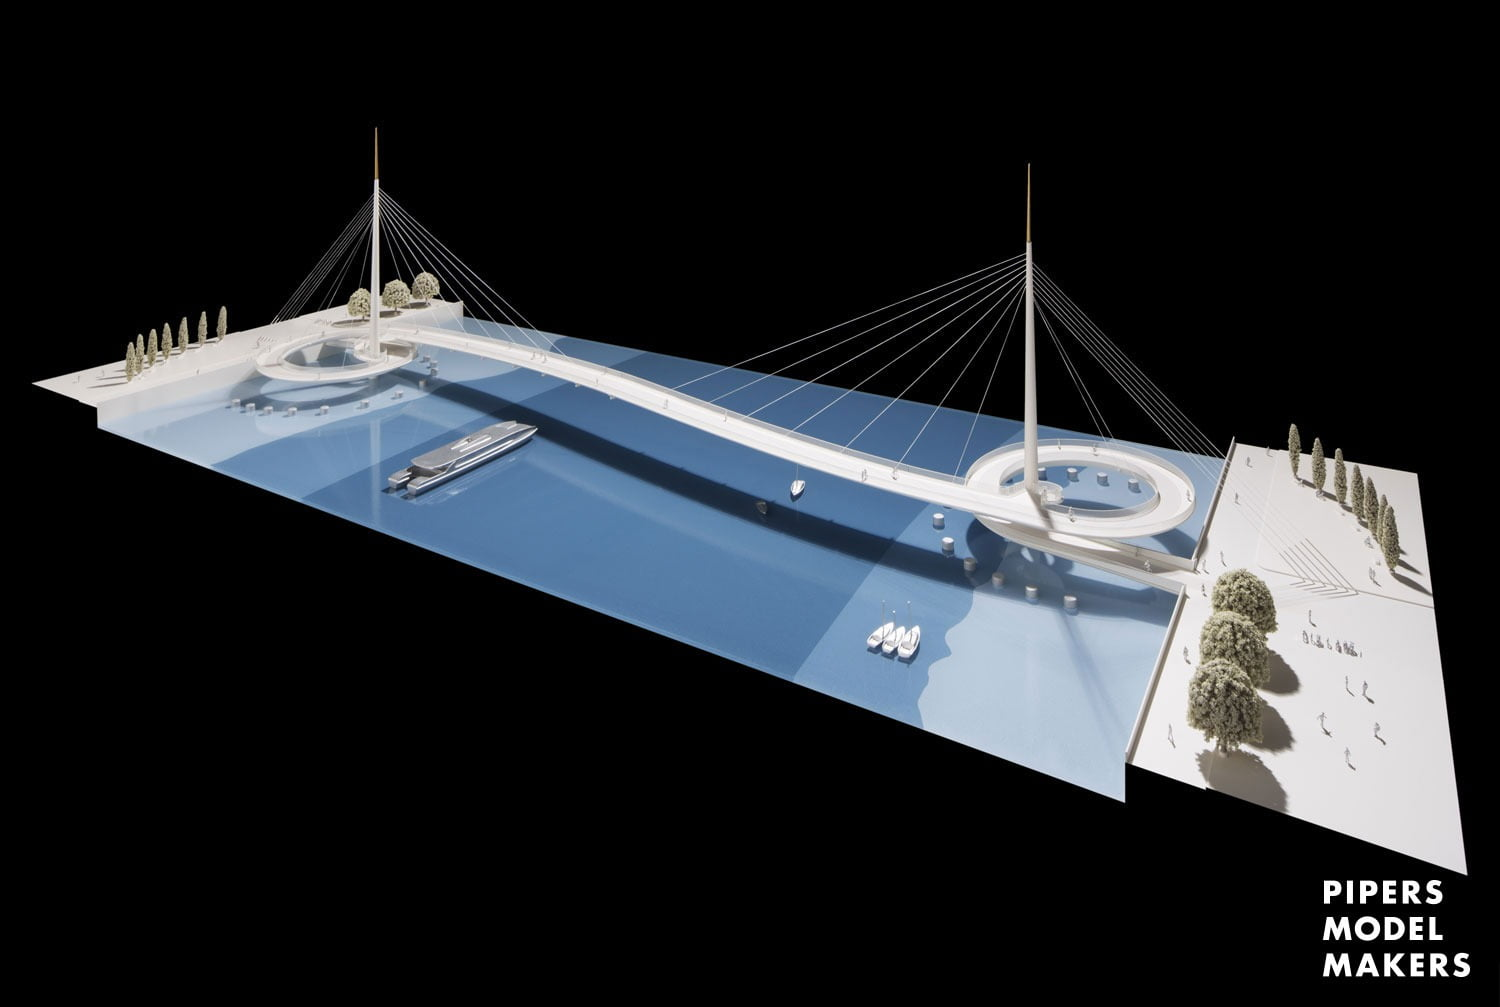 http://Nine%20Elms%20Pimlico%20Bridge%20Robin%20Snell%20and%20Partners%20Architectural%20Model